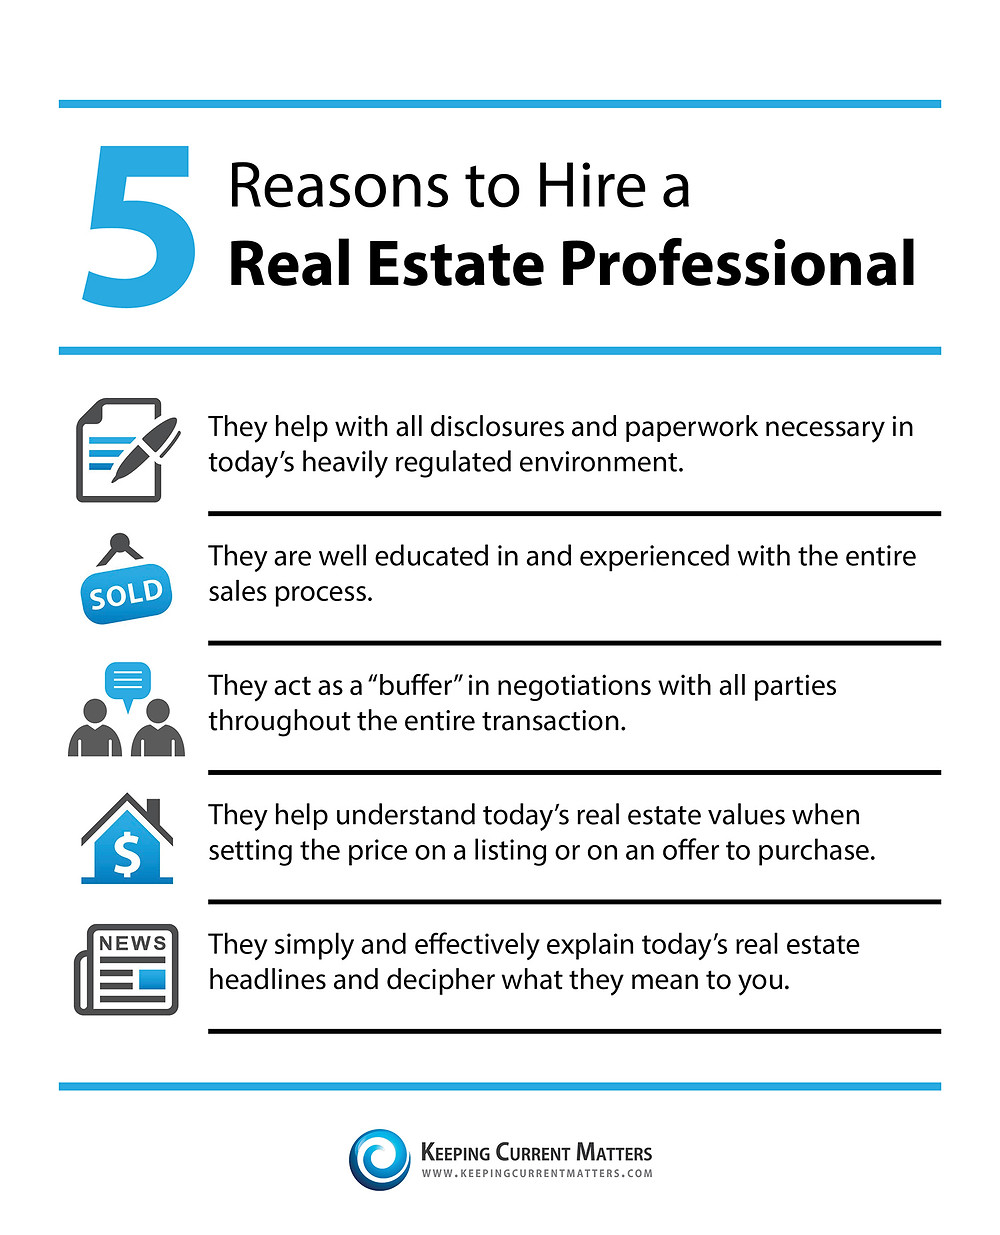 5 Reasons to Hire a Real Estate Professional | Keeping Current Matters